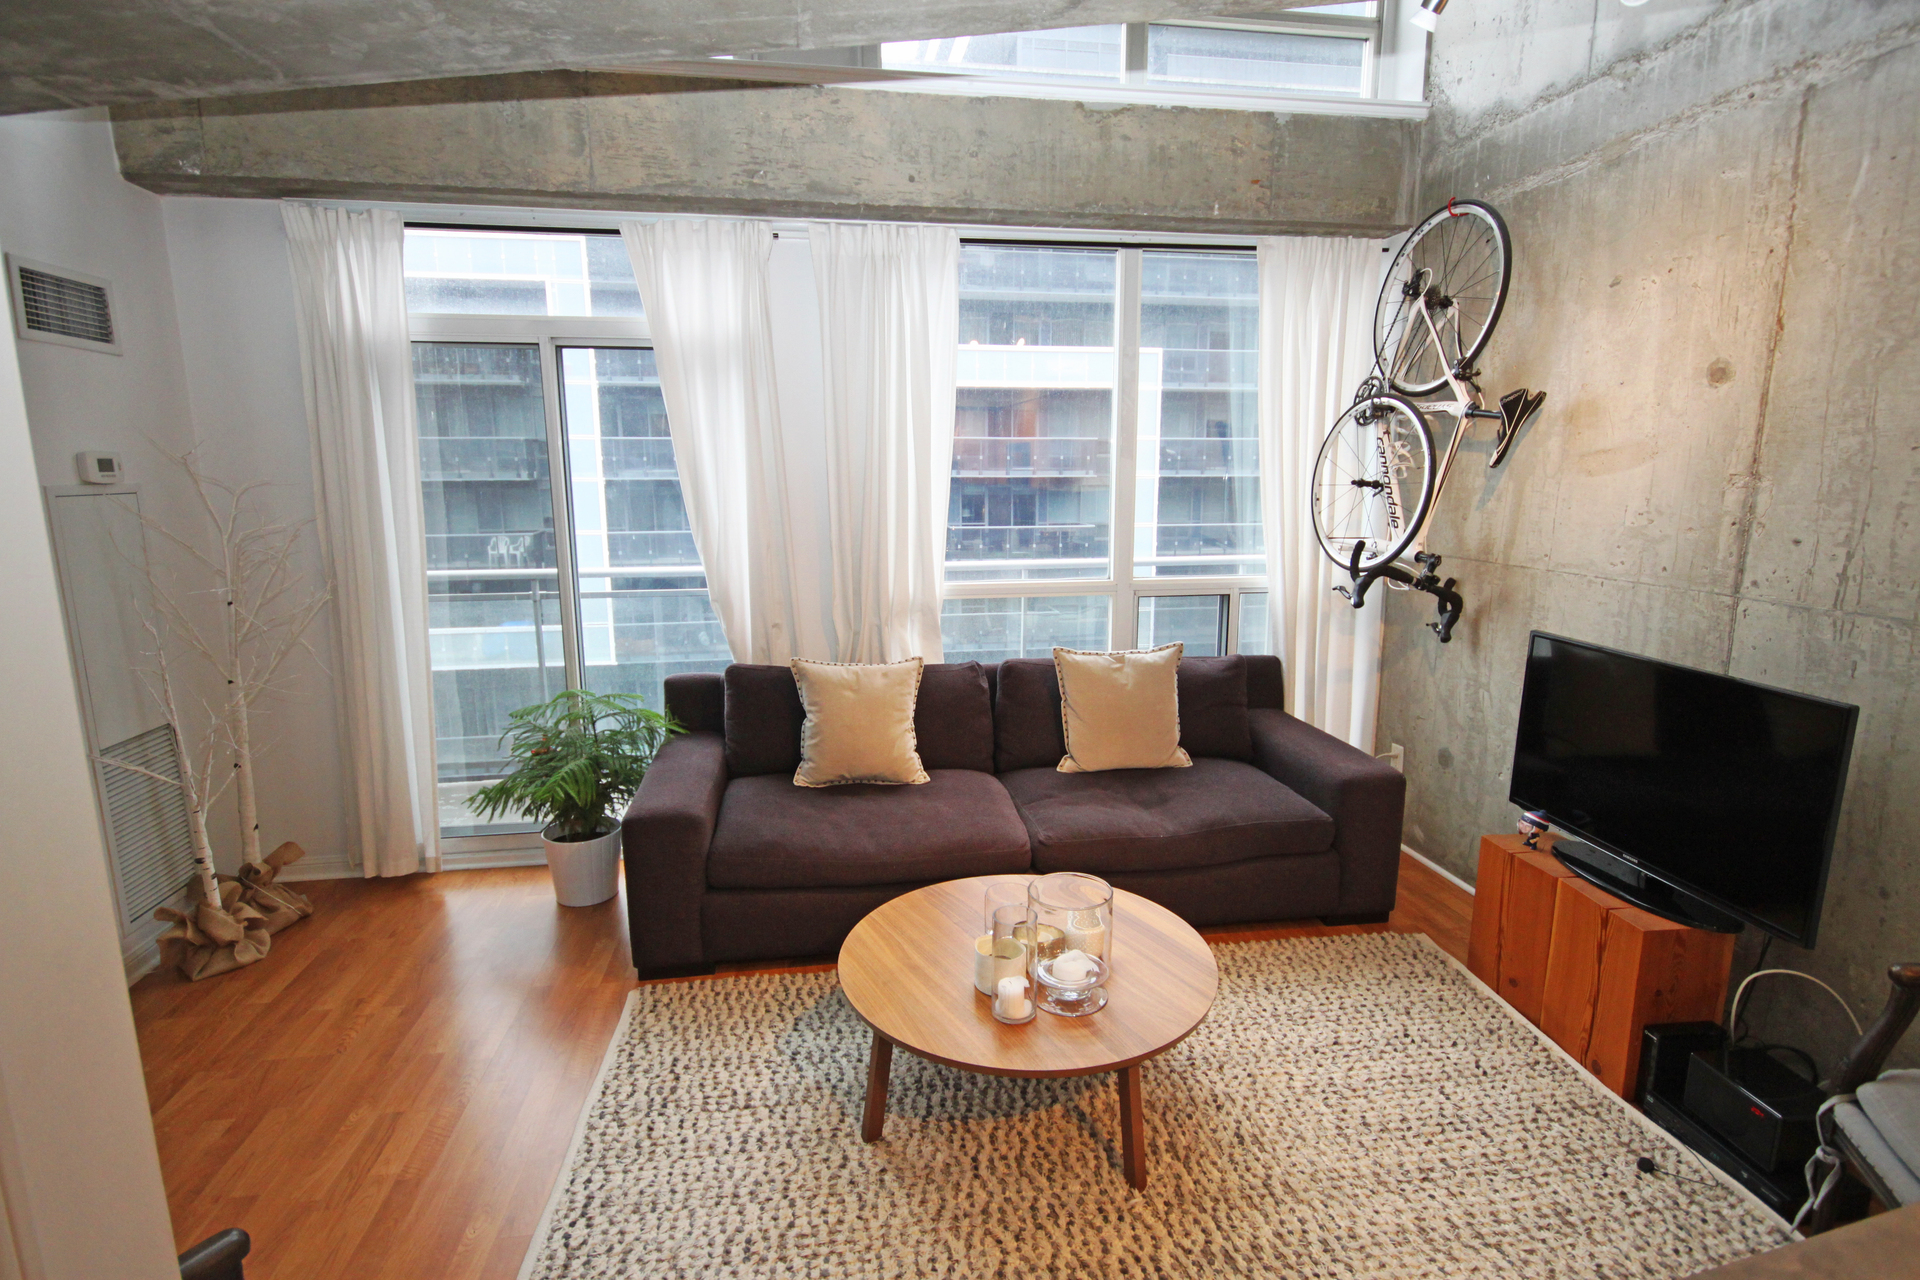 Living Room at 811 - 1029 King Street W, Niagara, Toronto